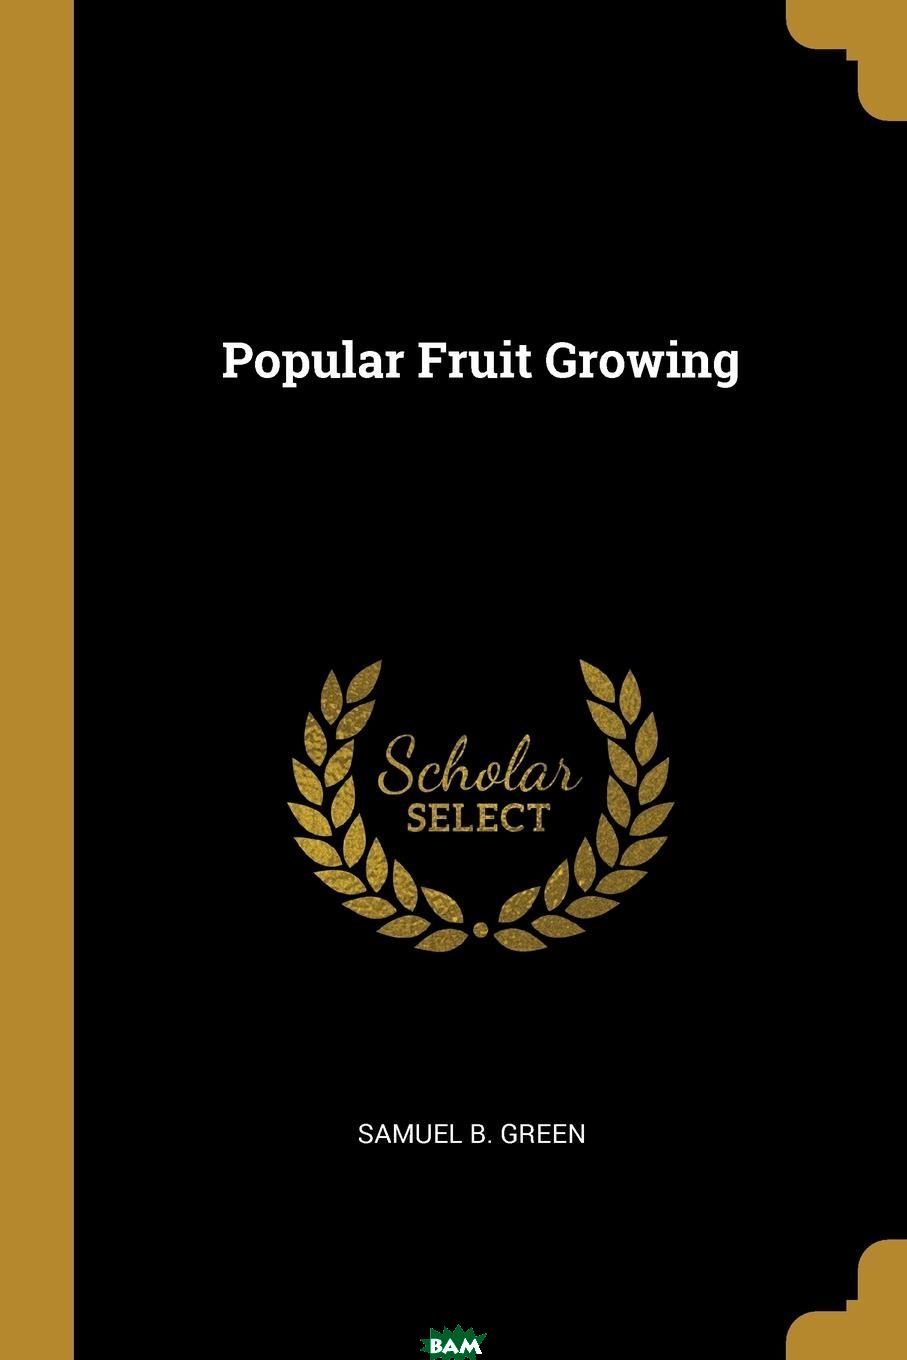 Купить Popular Fruit Growing, Samuel B. Green, 9781010345664